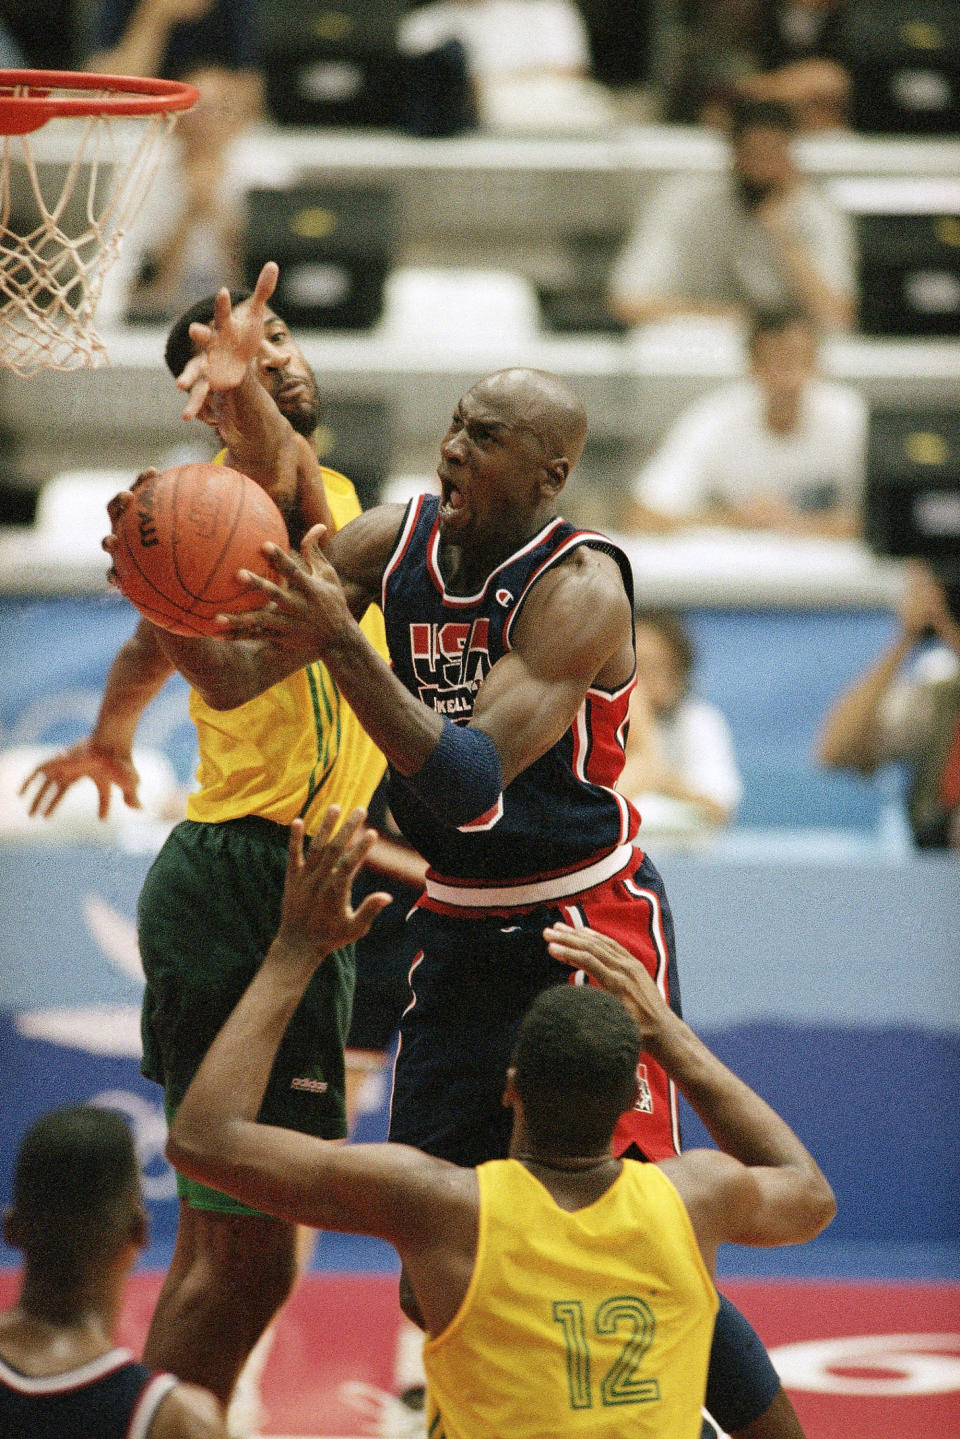 FILE - In this Friday, July 31, 1992, file photo, USA's Michael Jordan takes the ball to the hoop past the outstretched arms of Brazil's Josuel Aristides Santos for two points during first half action of their game at the XXV Summer Olympic Games in Barcelona. USA won the game 127-83. (AP Photo/Stephan Sevoia, FIle)